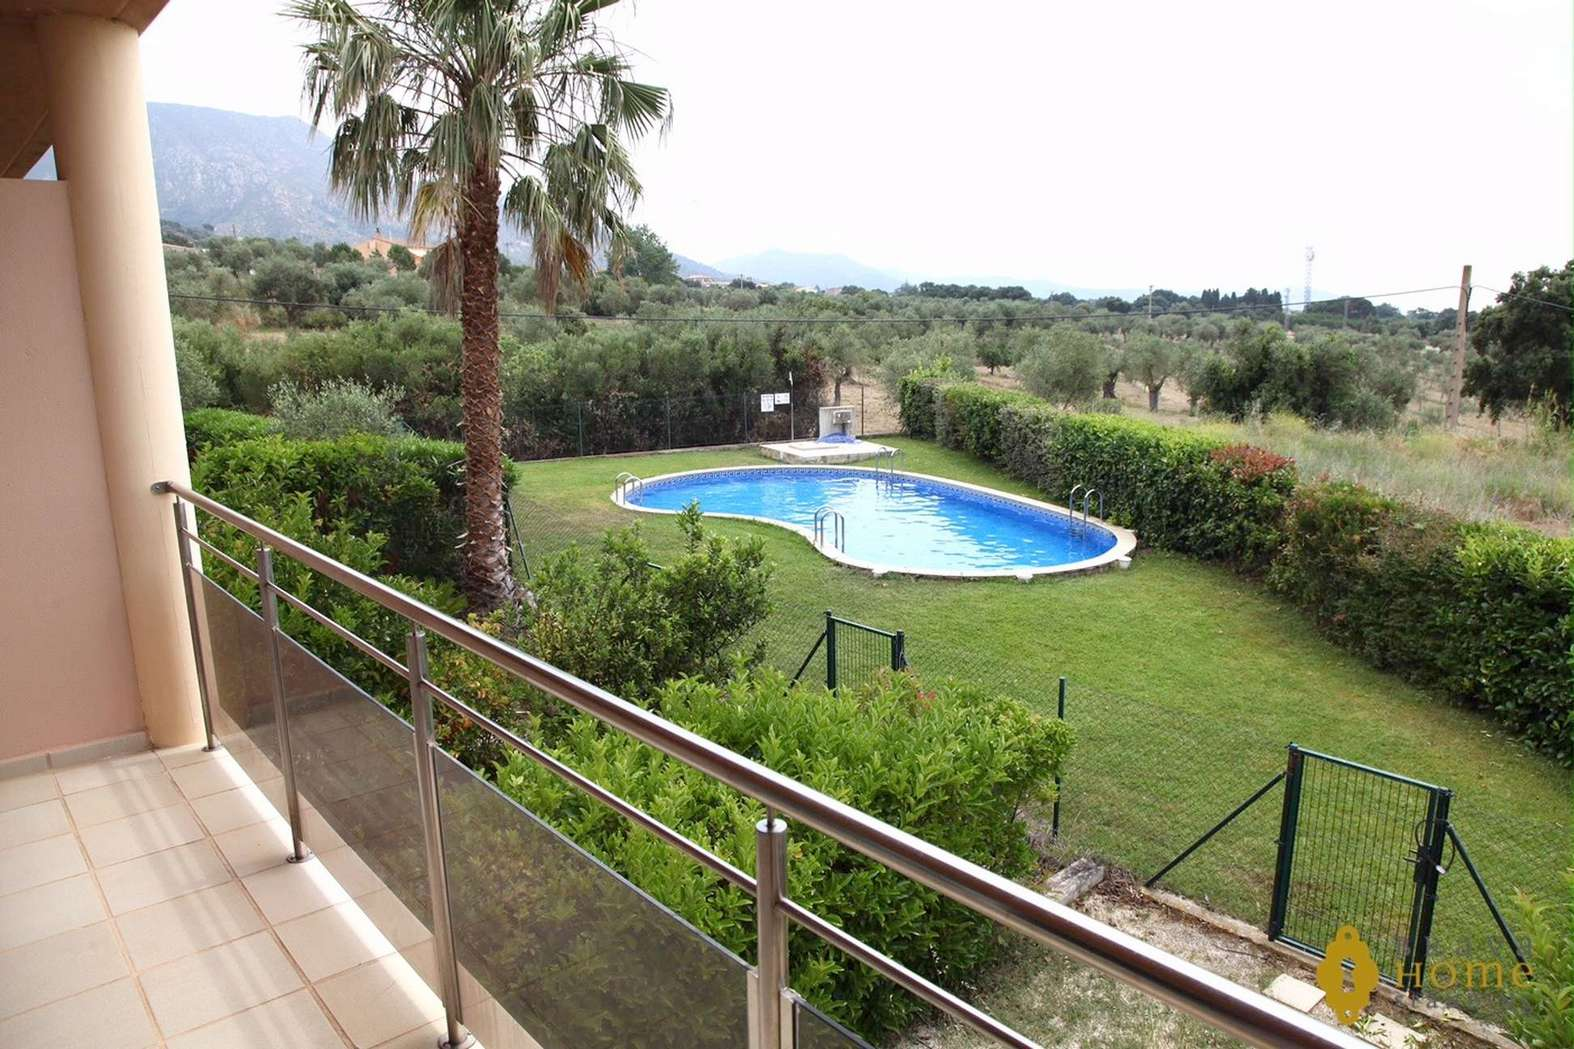 Duplex apartment with pool for sale in Palau Saverdera (Costa Brava)